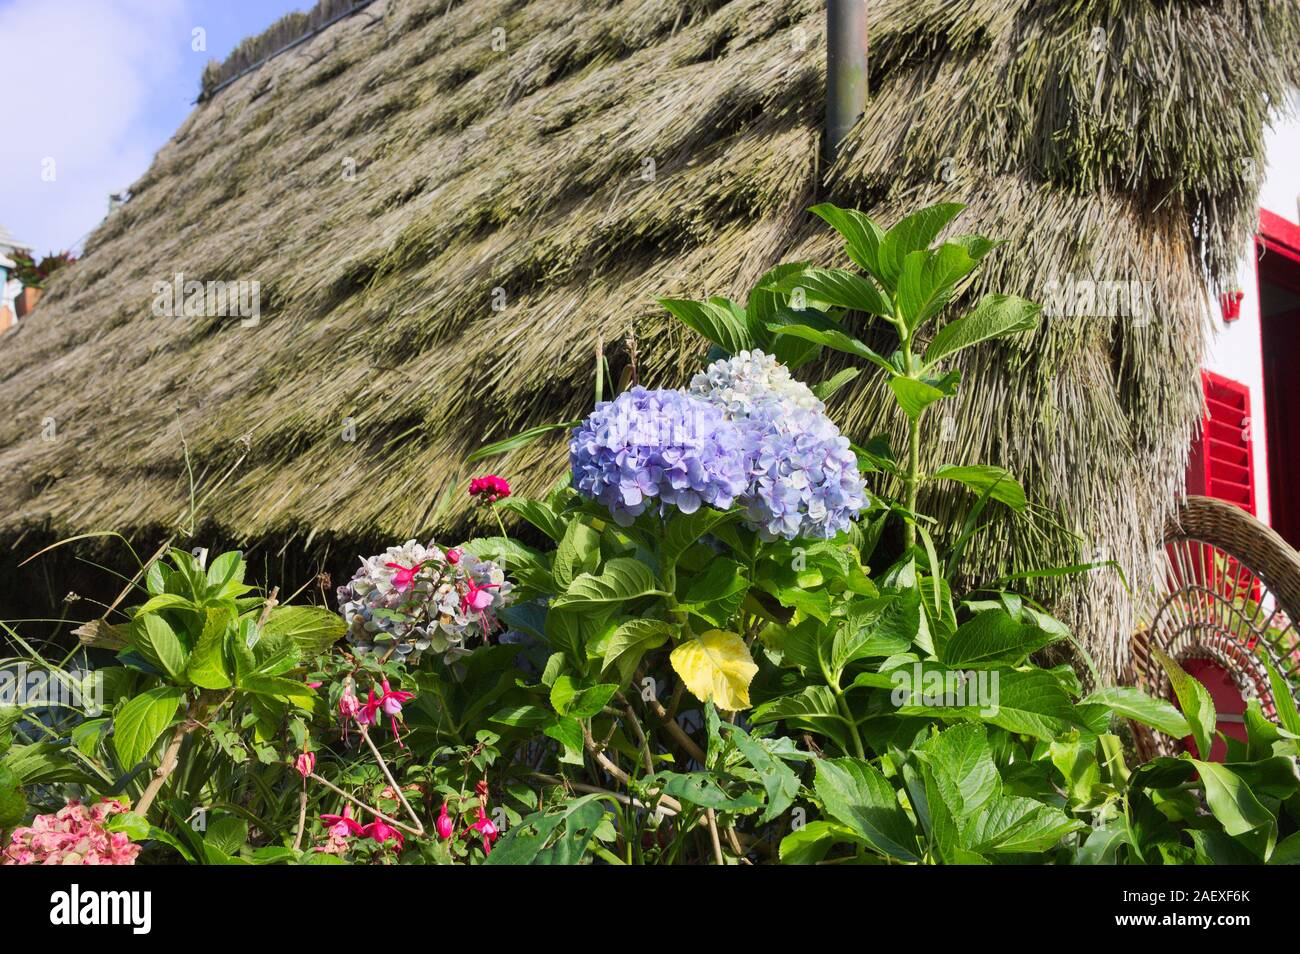 Colored hydrangea flowers in the garden of a rural house with an old thantched roof (Madeira, Portugal, Europe) Stock Photo